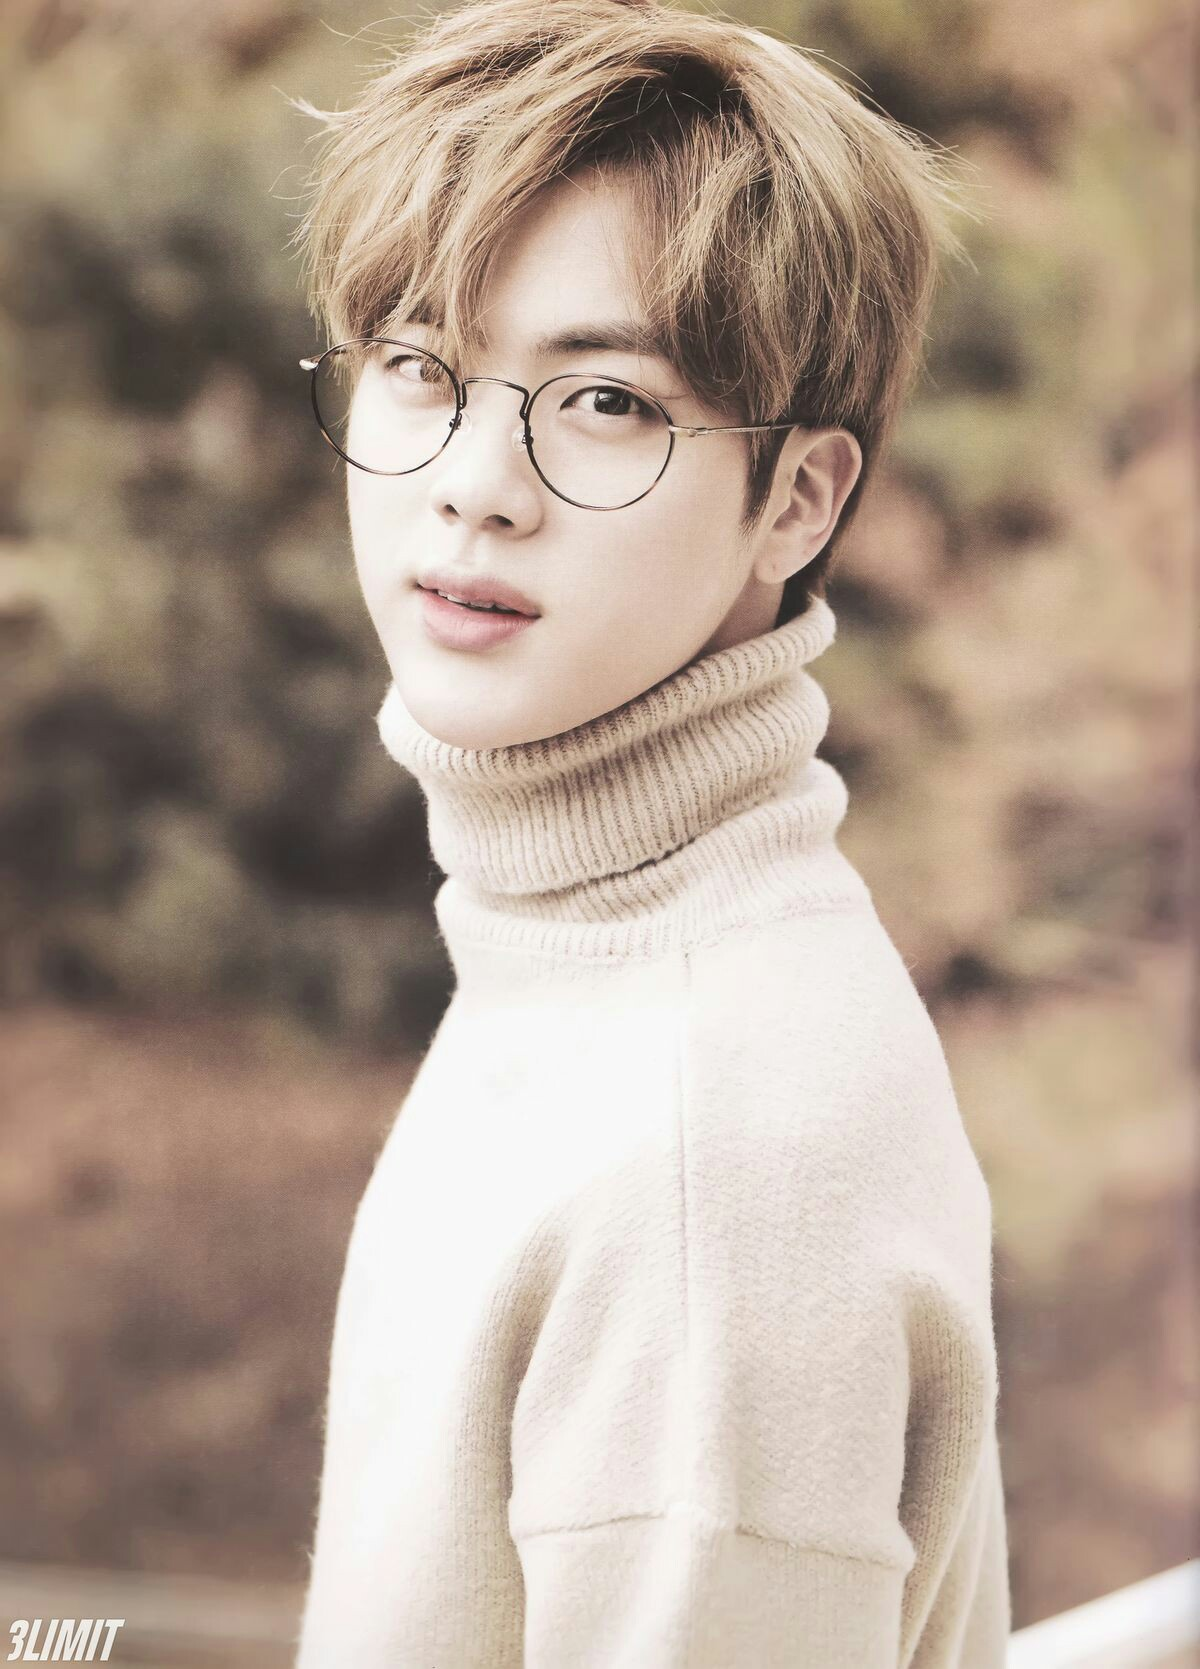 Jin Bts Hd Posted By Zoey Thompson